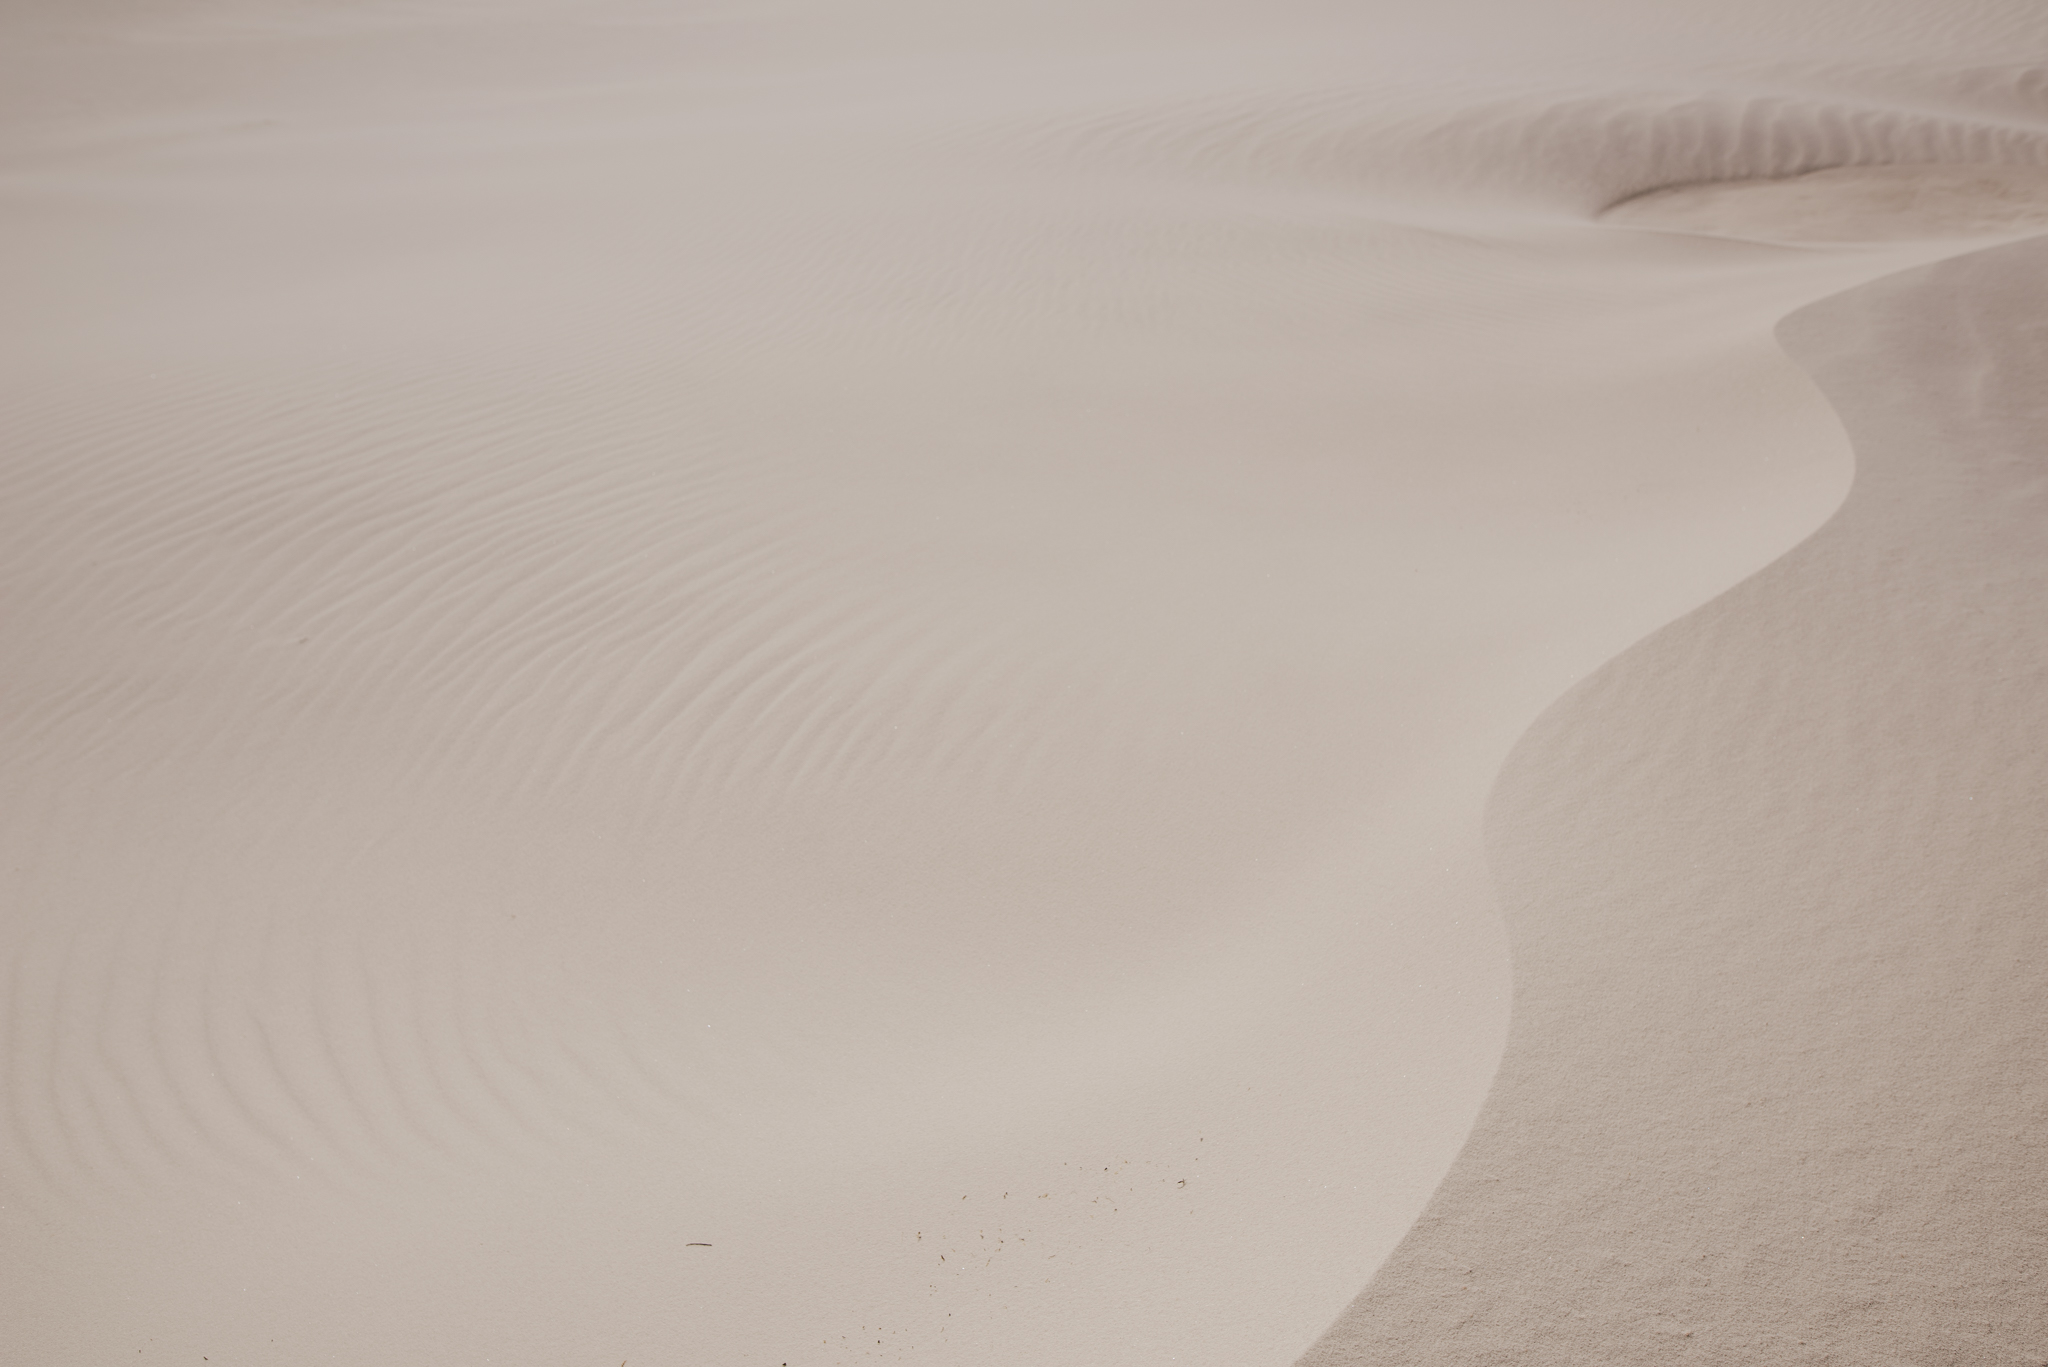 ©The-Ryans-Photography---White-Sands-National-Monument,-New-Mexico-Travel-031.jpg